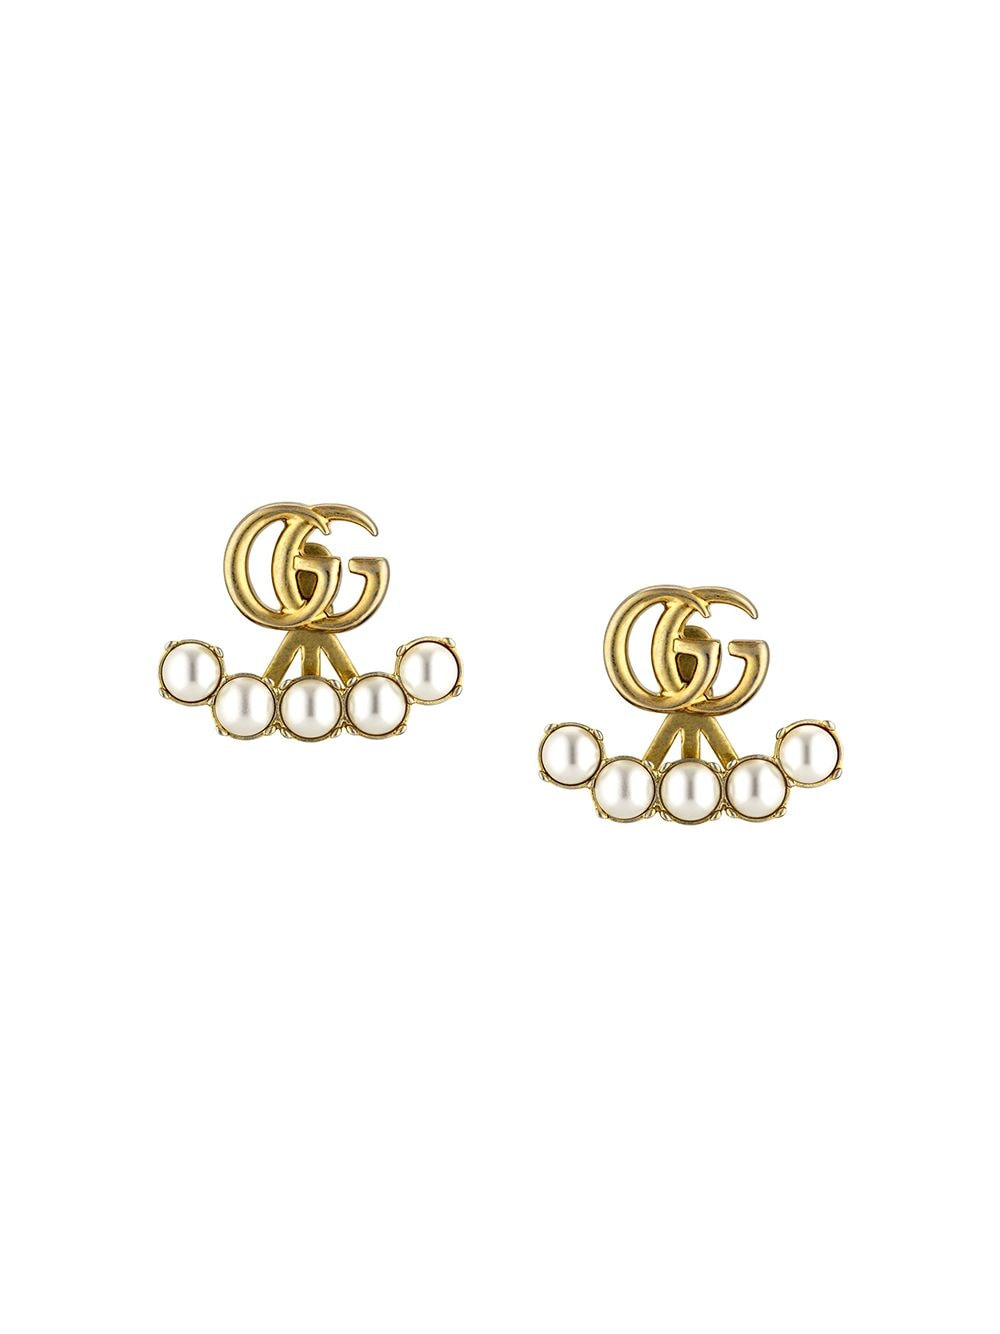 Gold-tone double G earrings featuring white pearls GUCCI |  | 629565-I46208078